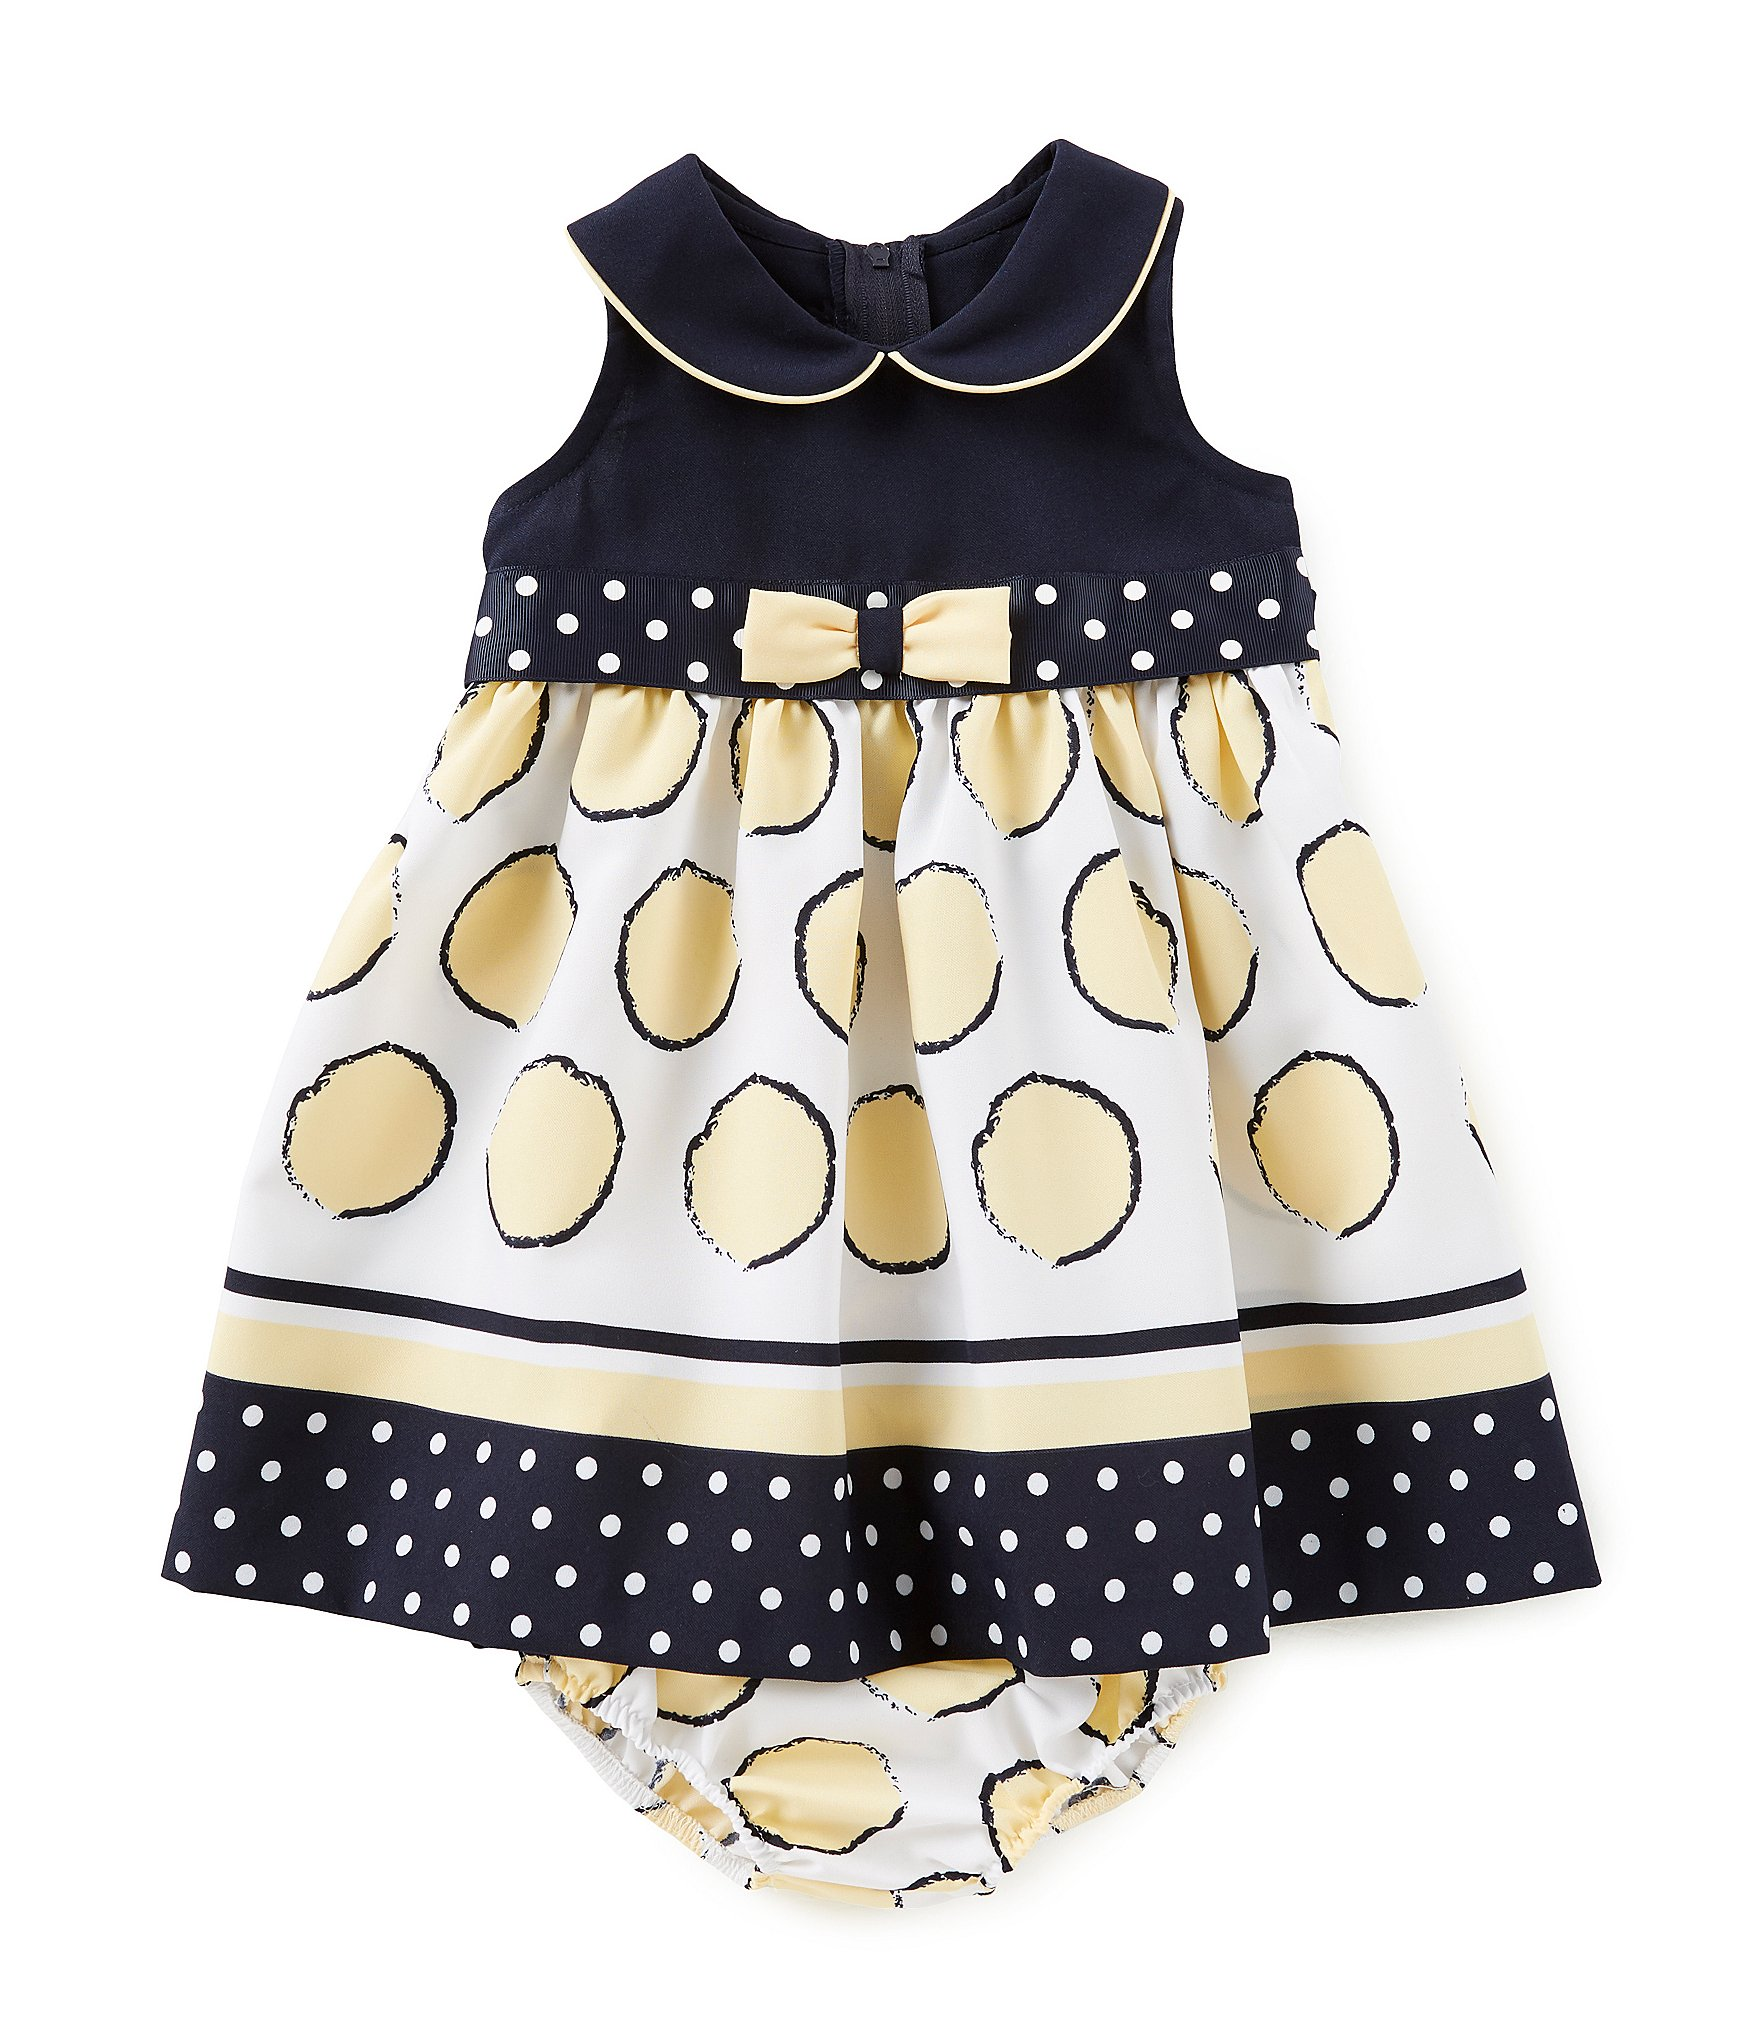 Bonnie Jean Baby Girl Clothing